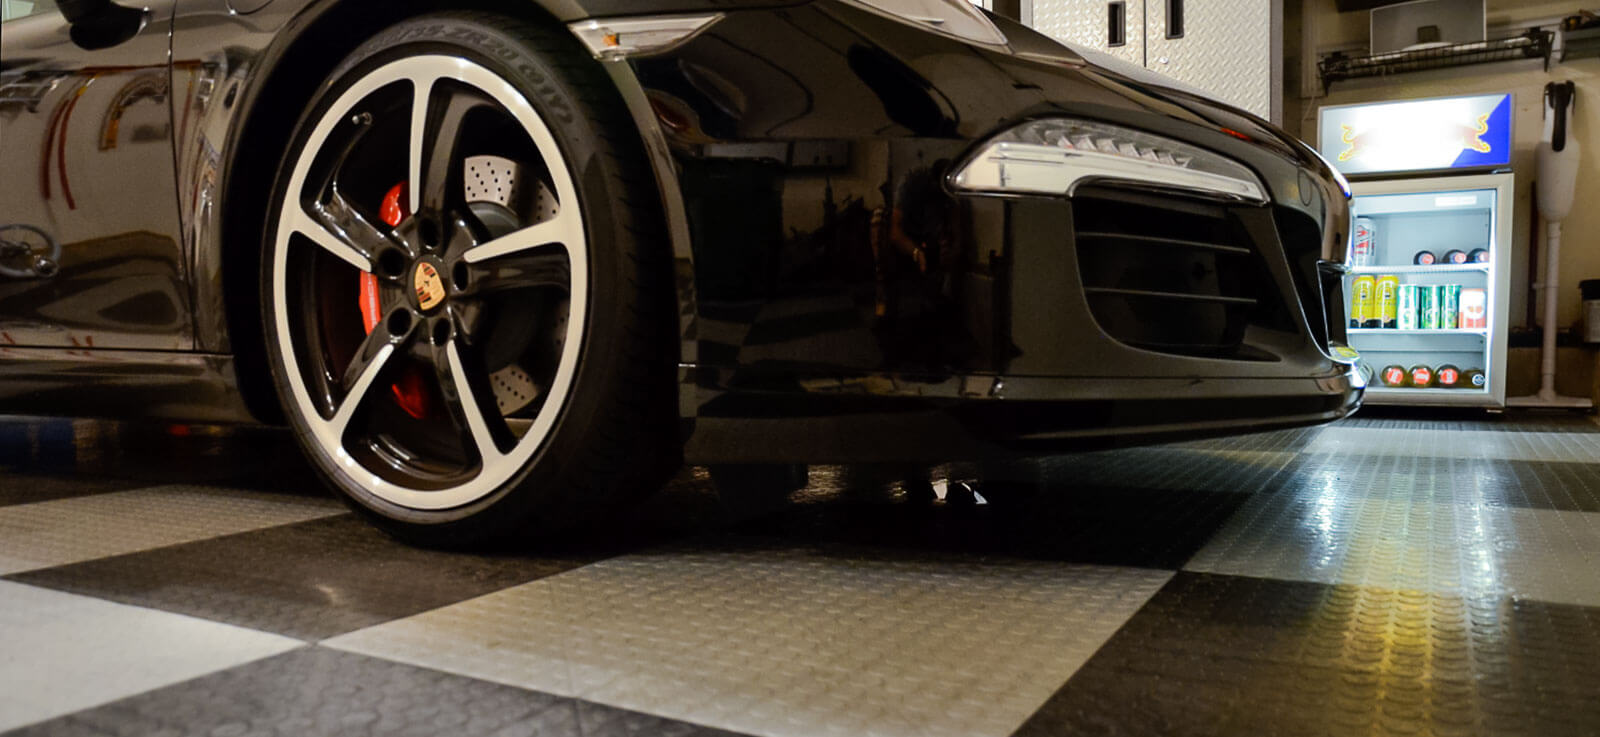 A Porsche on CircleTrac garage flooring